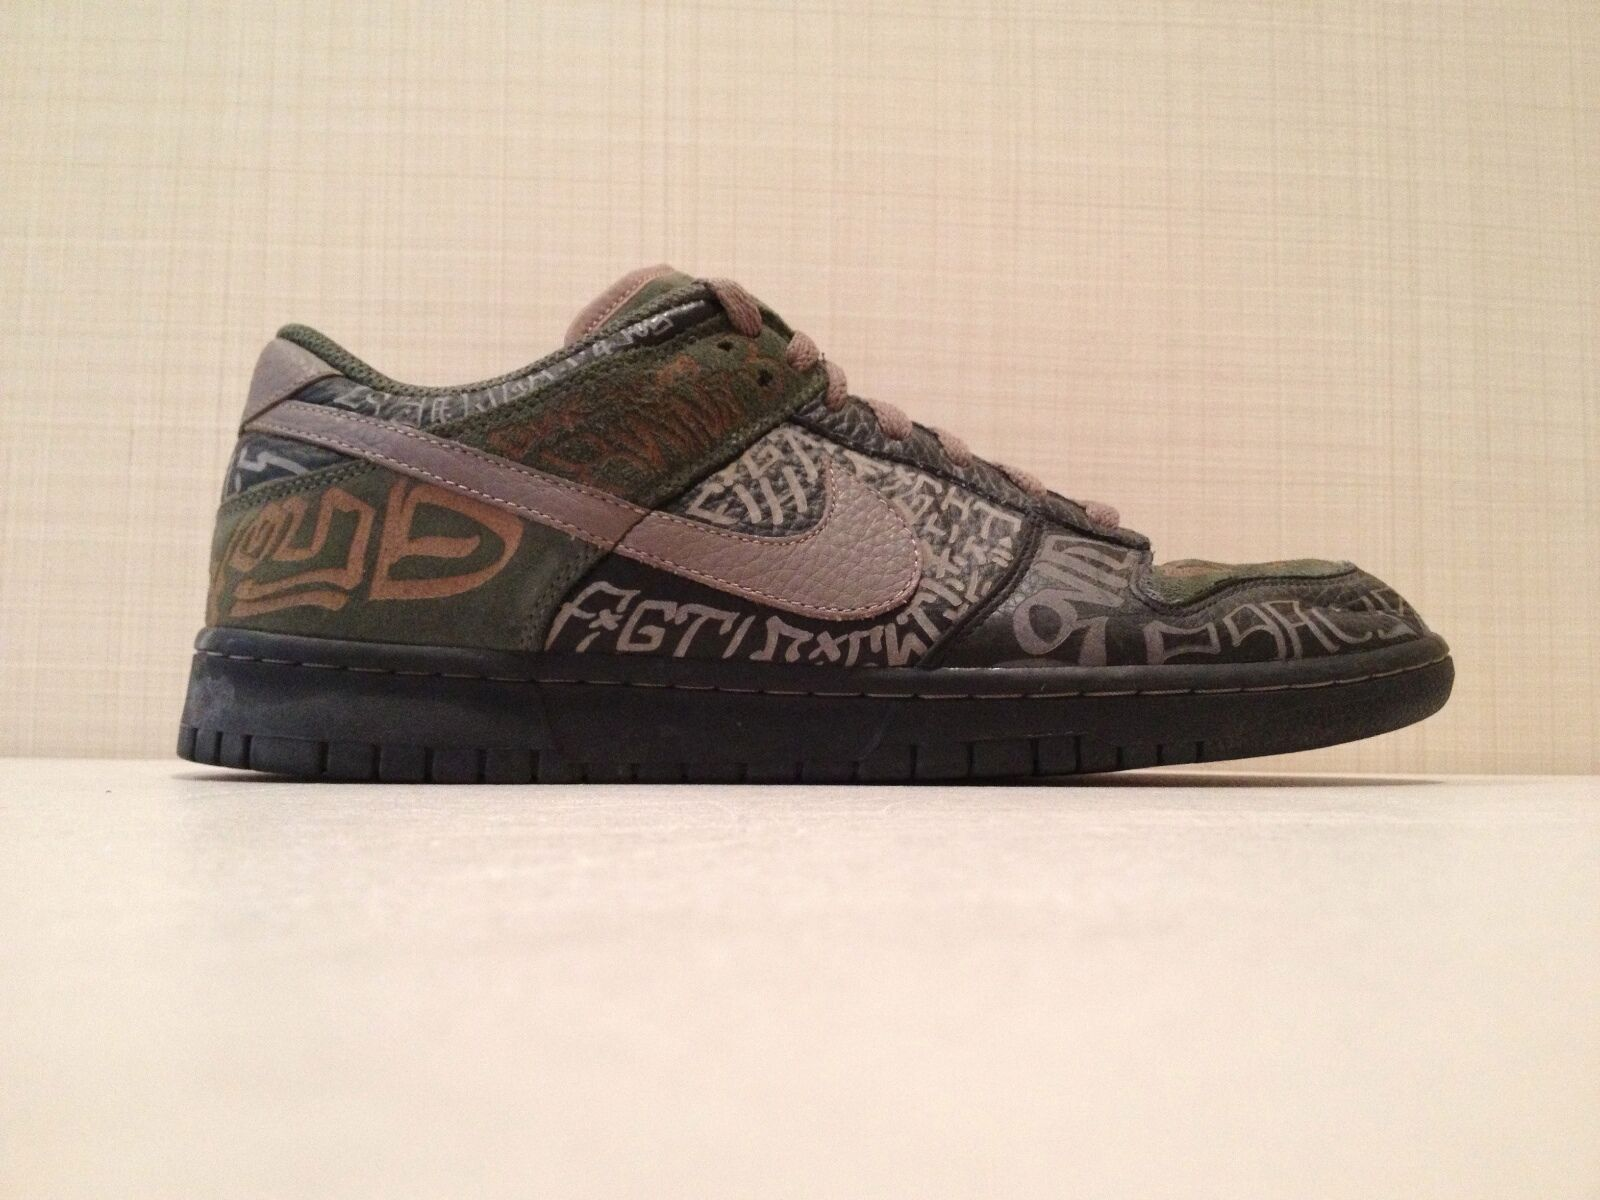 Nike Dunk Low Premium  Doernbecher  VNDS Size 12- Only 1000 Pairs Made